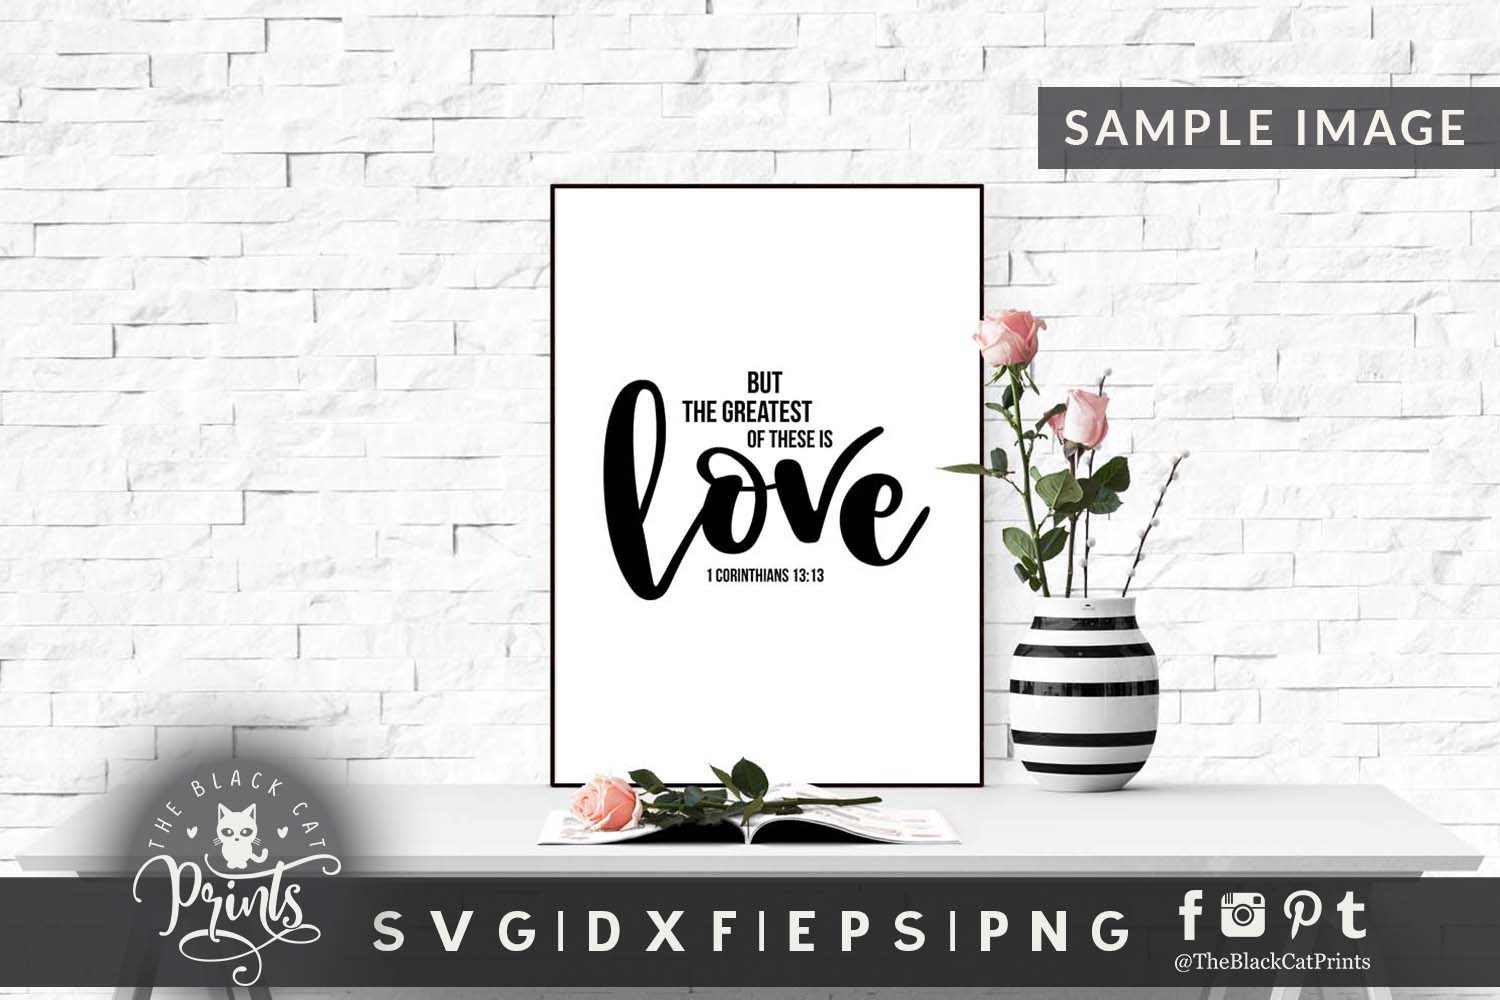 The Greatest of these is Love SVG DXF PNG EPS JPG example image 3